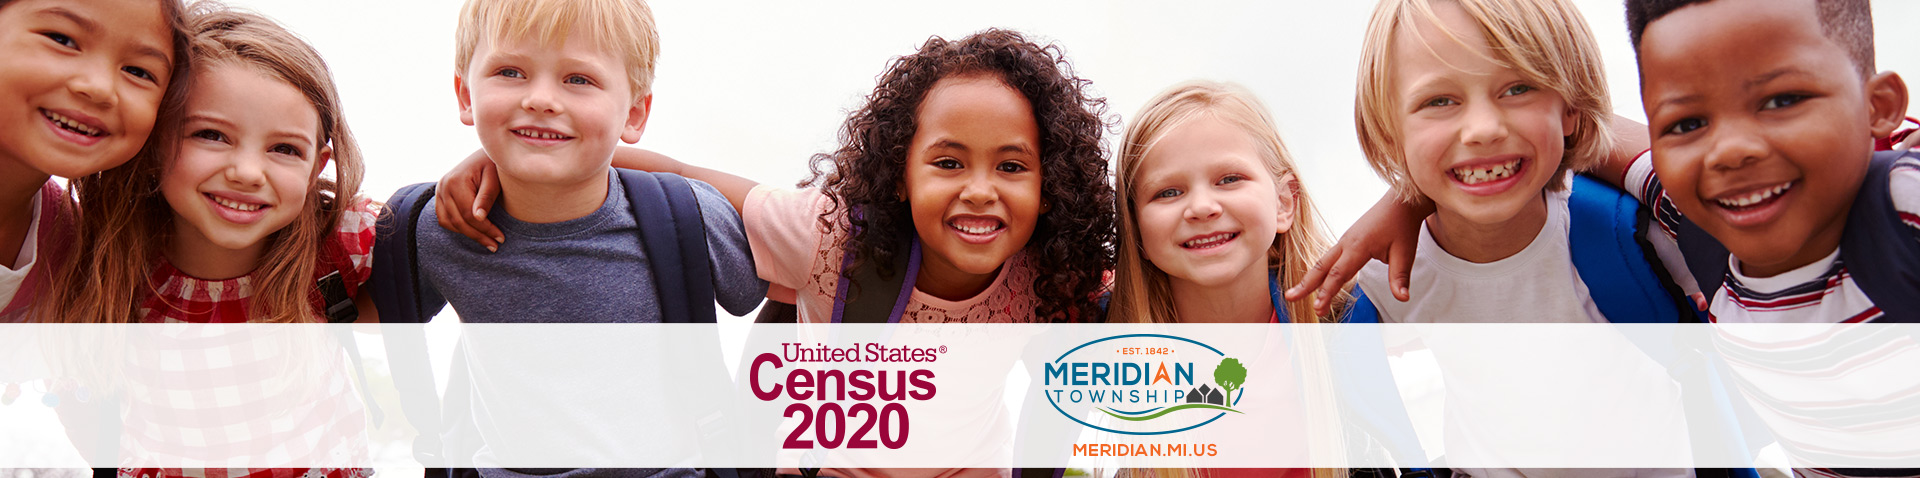 Census kids homepage banner